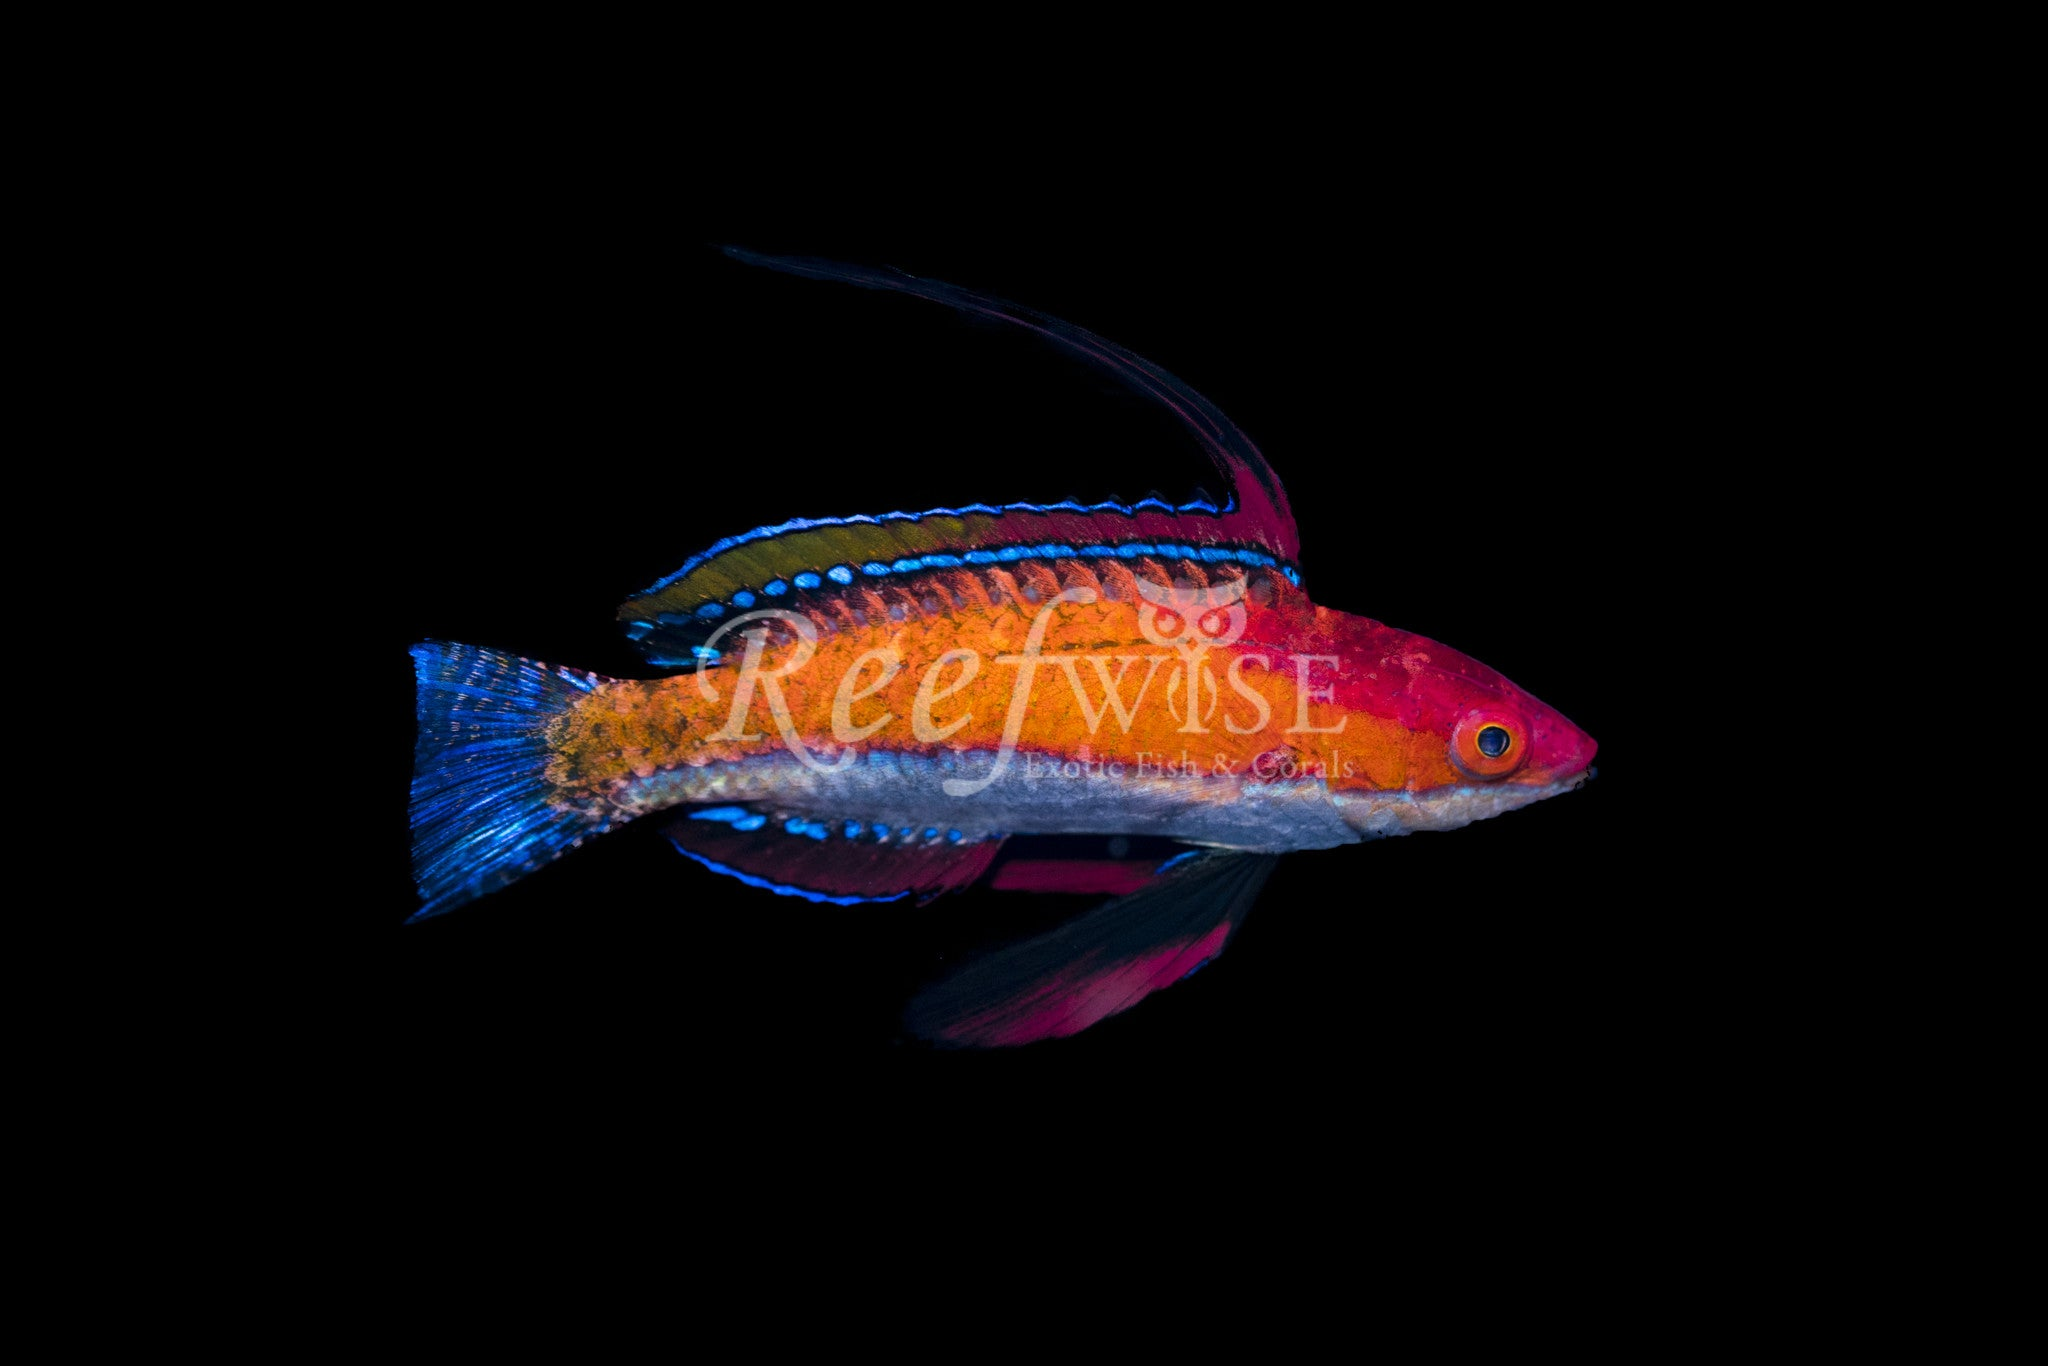 Rubriventralis Social Fairy Wrasse